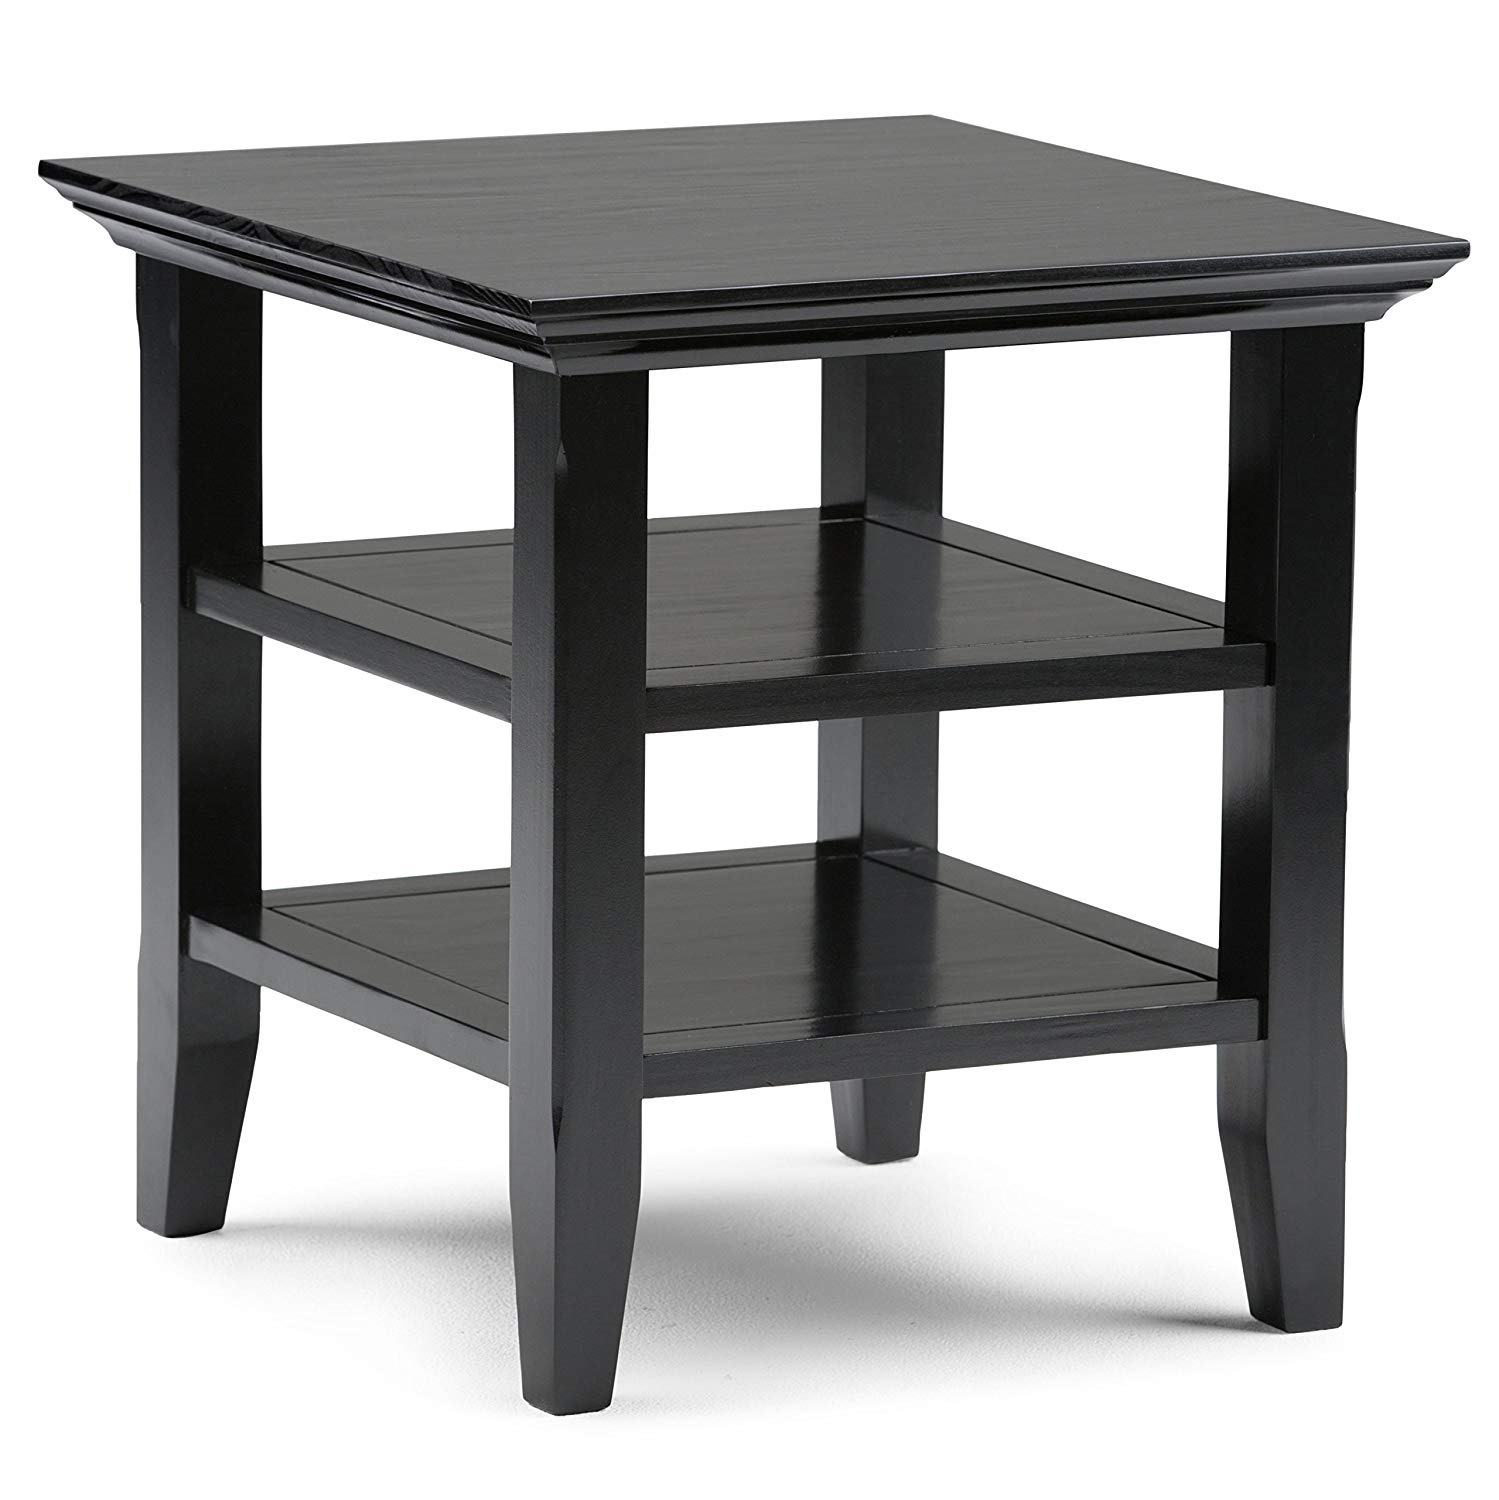 simpli home acadian solid wood end table black tables kitchen homesense garden decor pallet console storage cart powell furniture phone number how big are coffee glass silver side